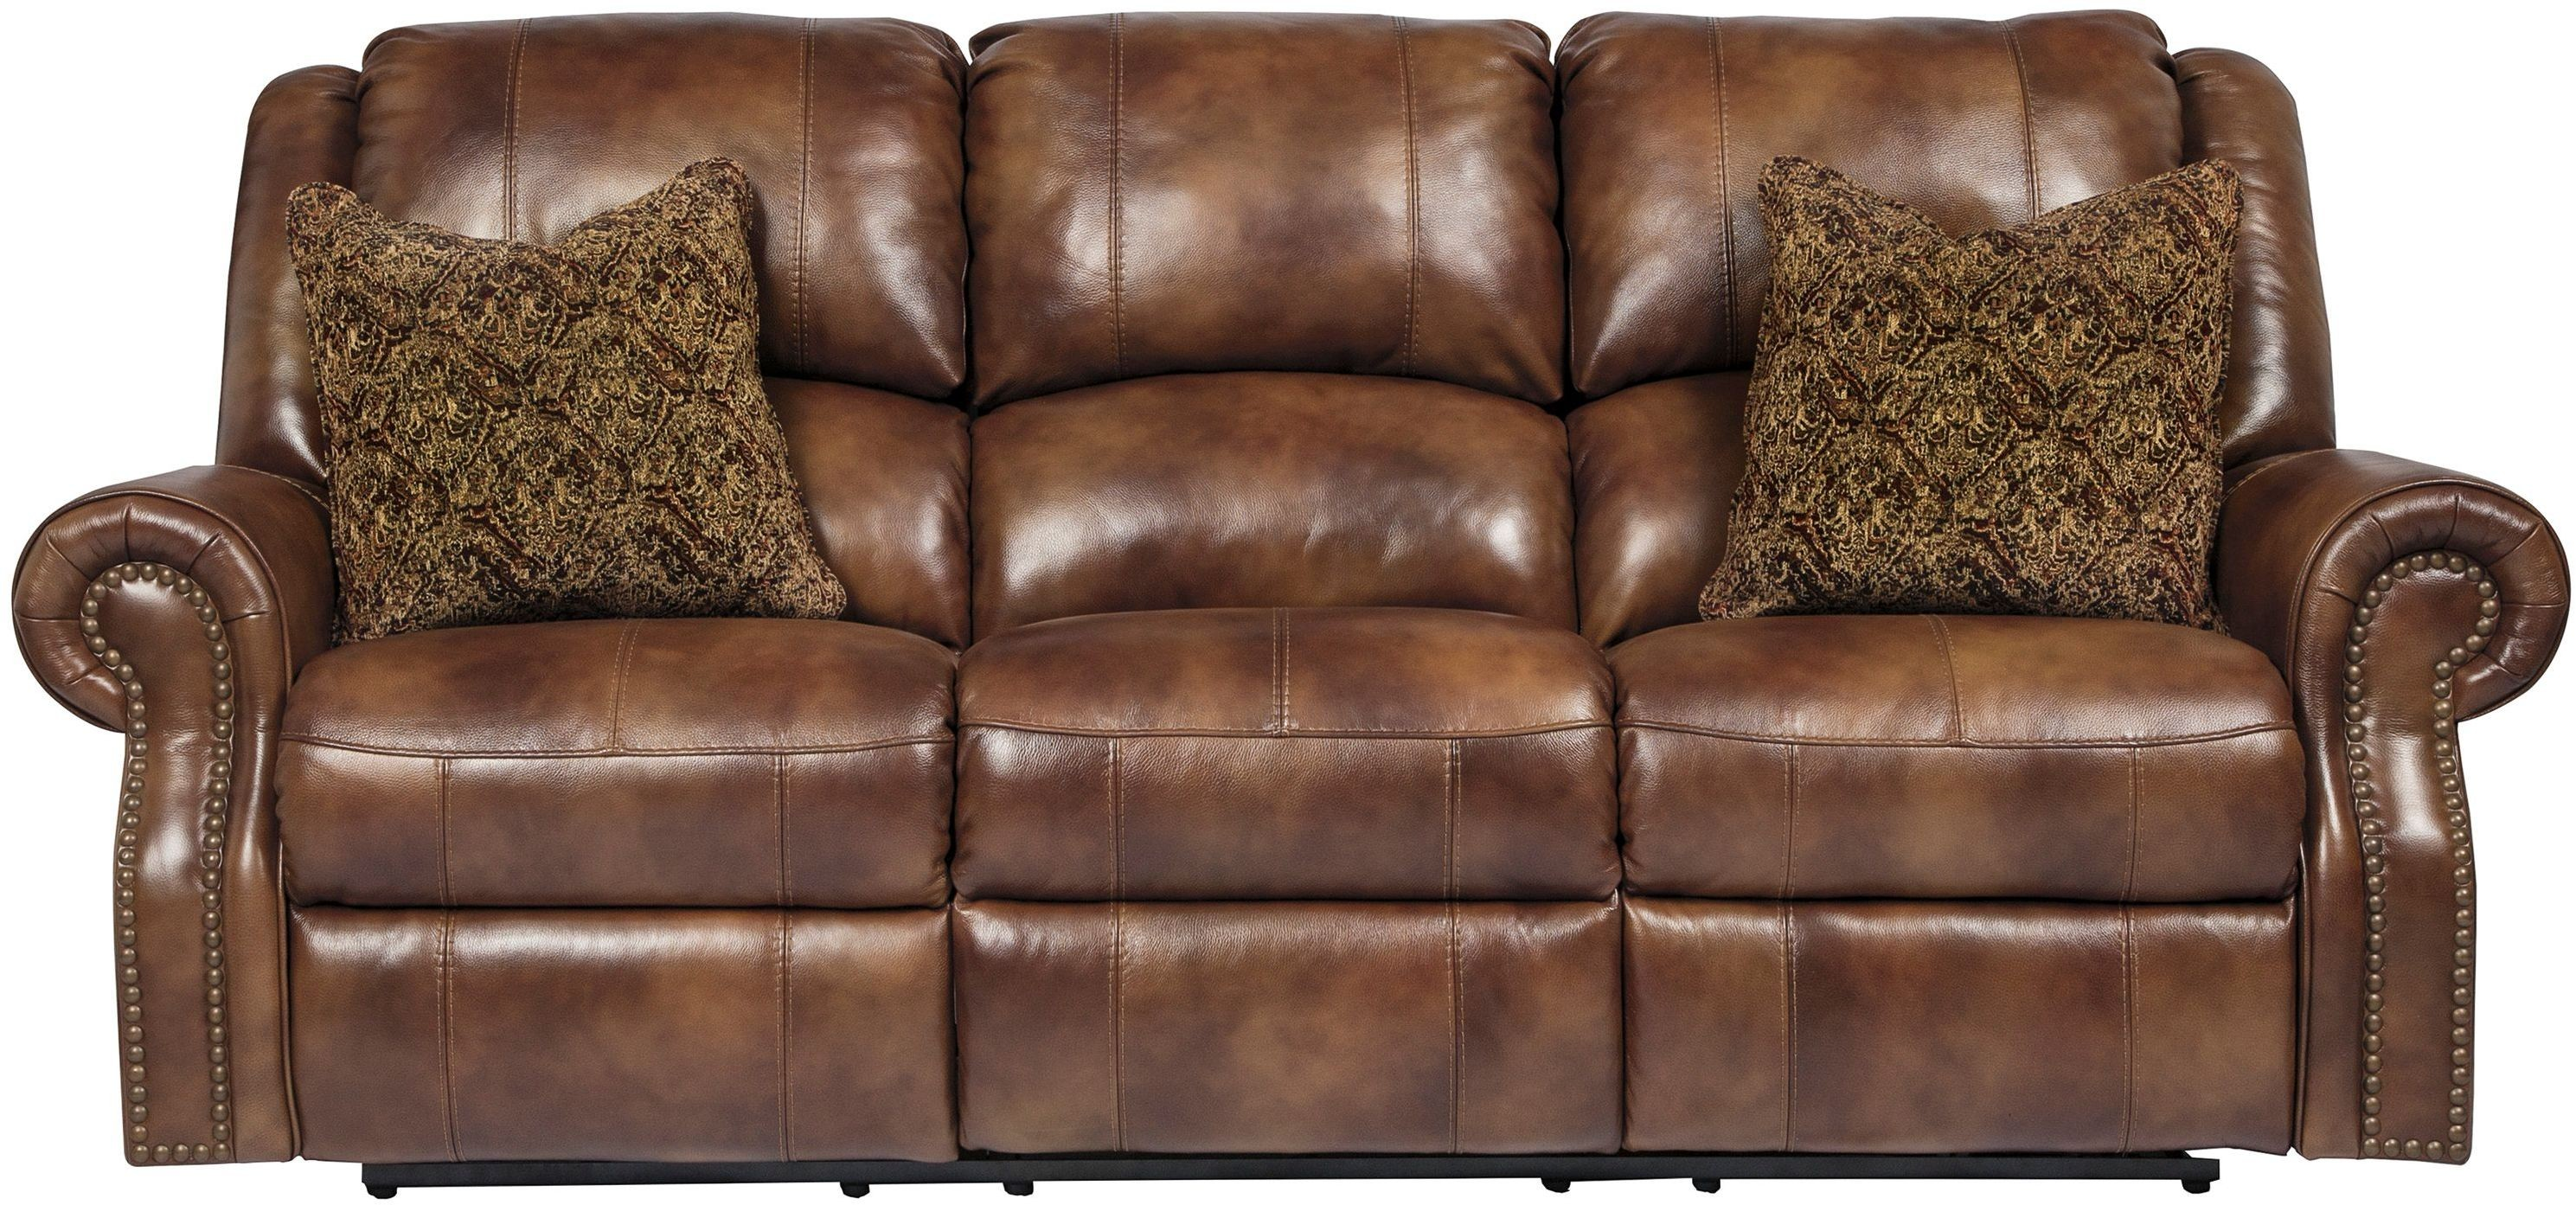 Walworth Auburn Power Reclining Sofa From Ashley (U7800187) | Coleman  Furniture